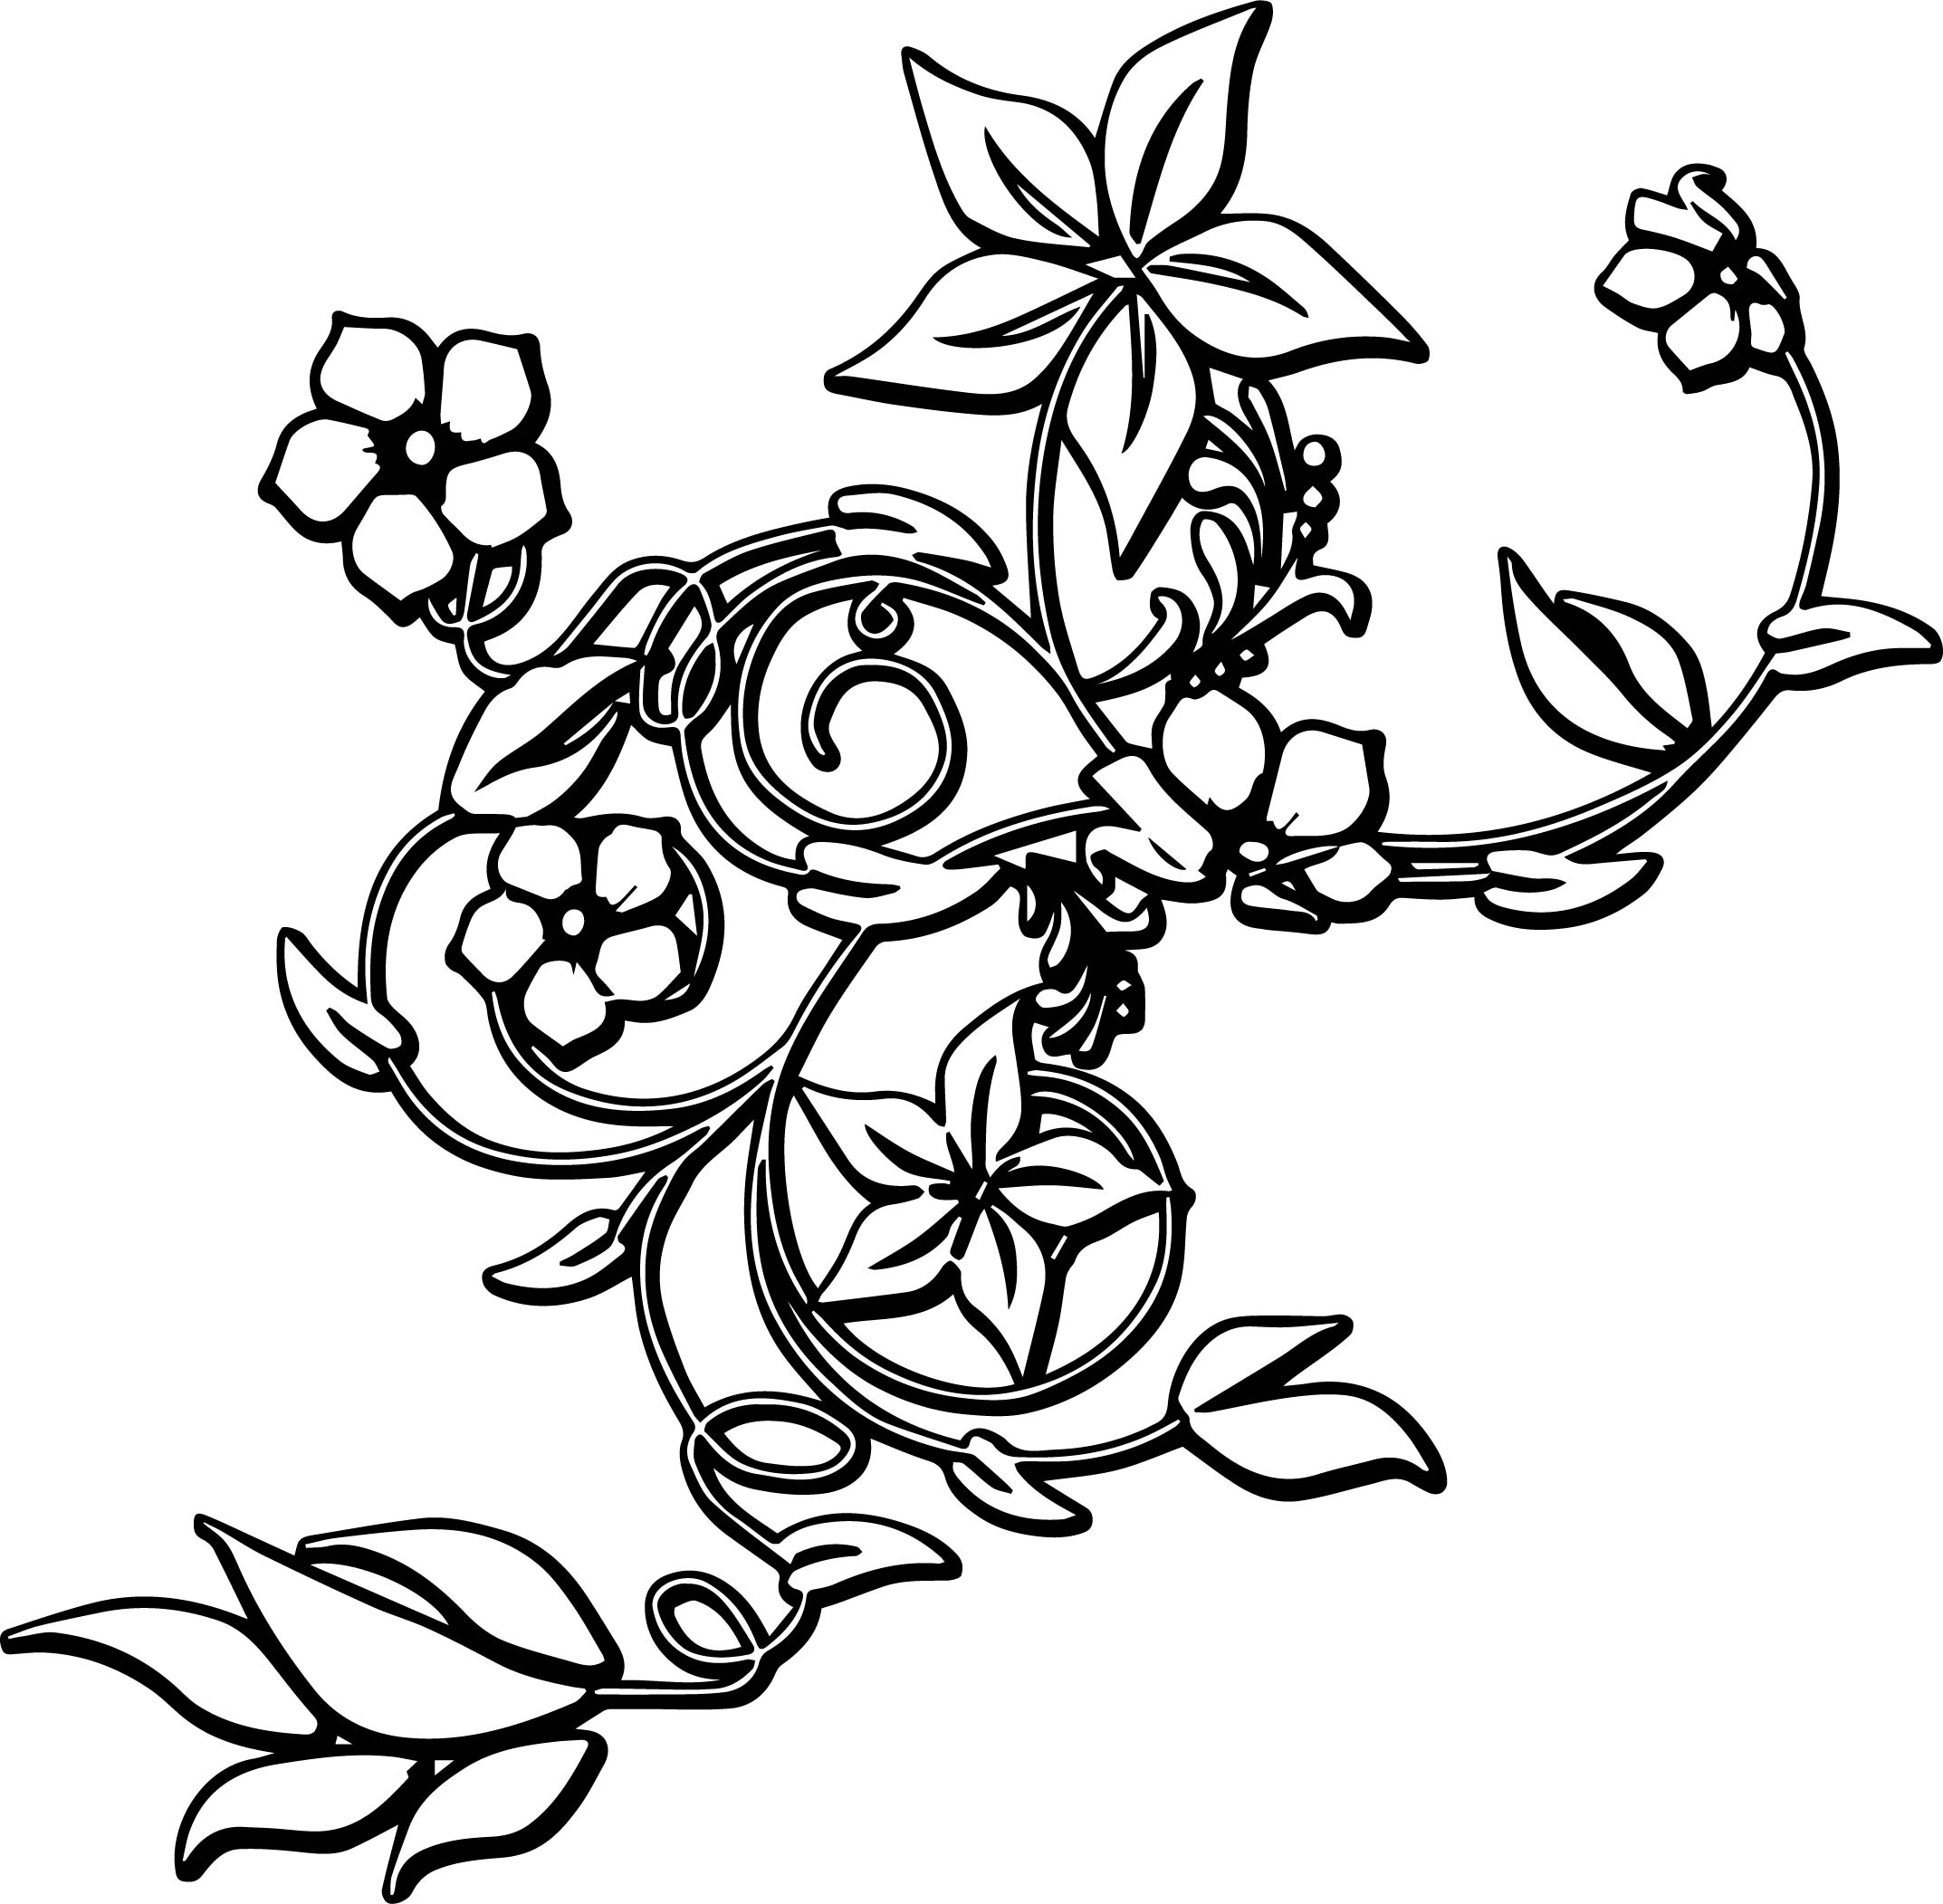 coloring pages flower borders - photo#16